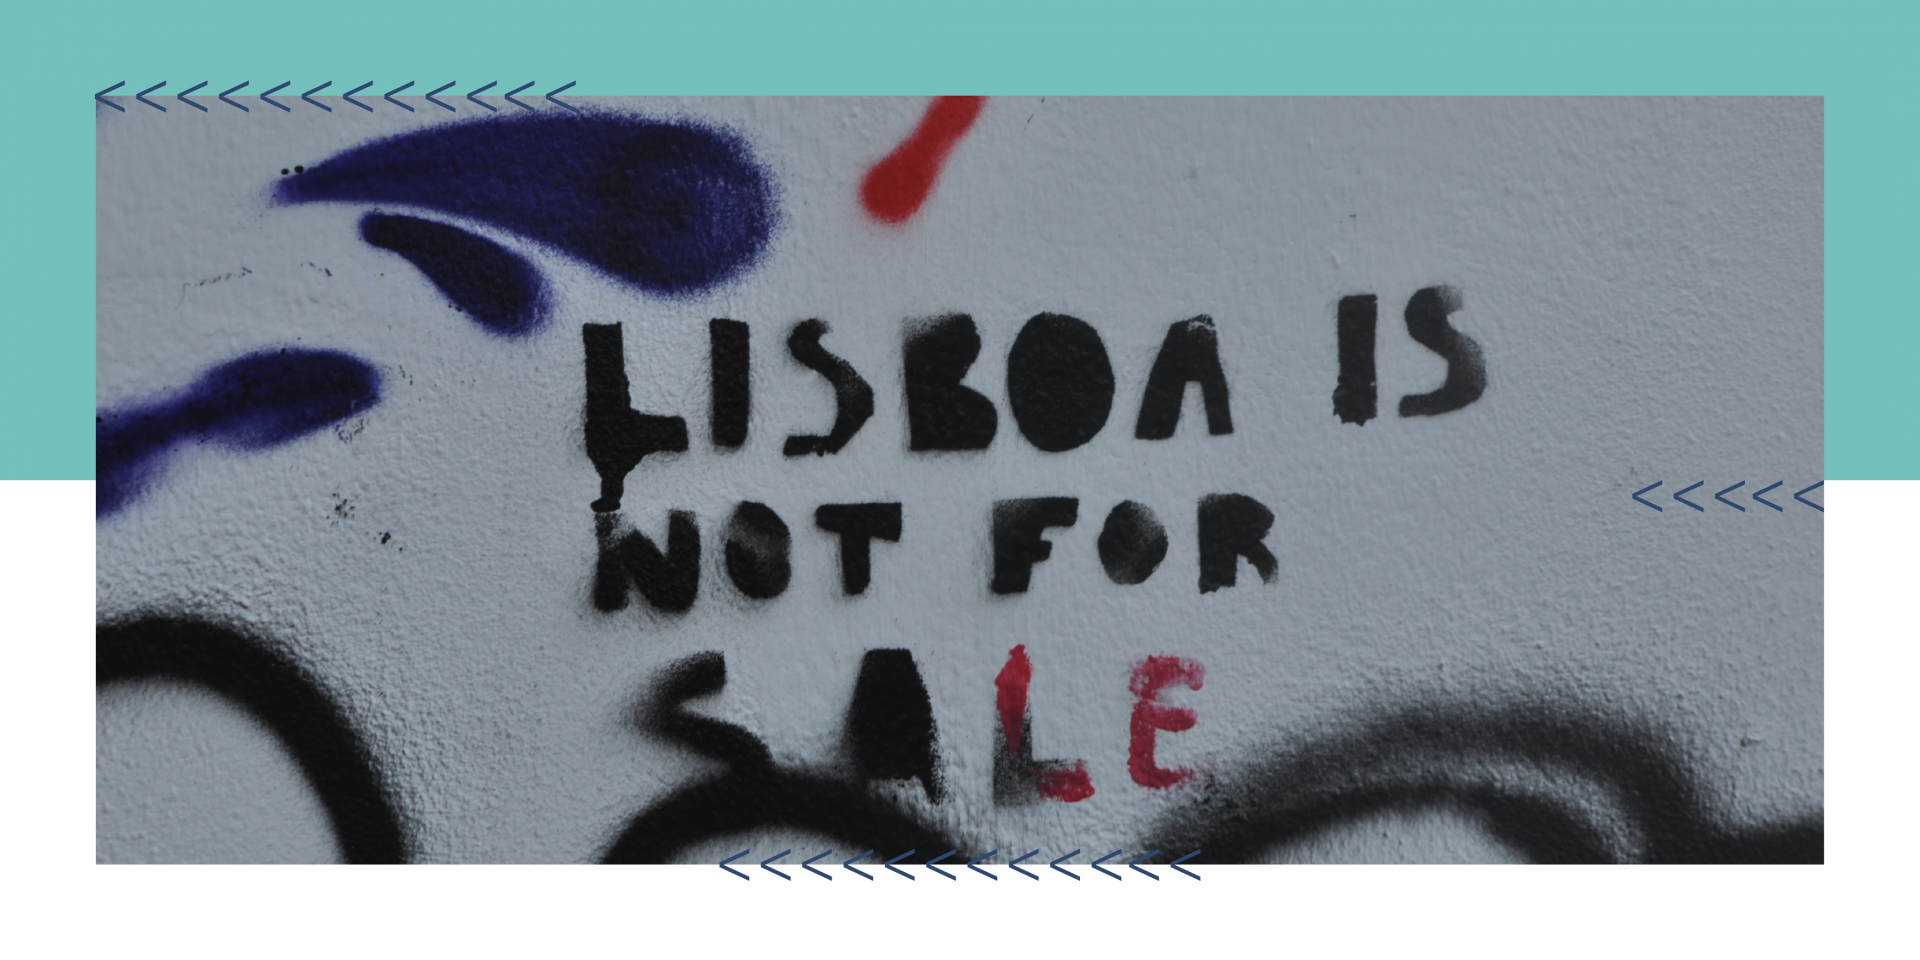 Grafiti Lisboa is not for sale, numa parede de Lisboa